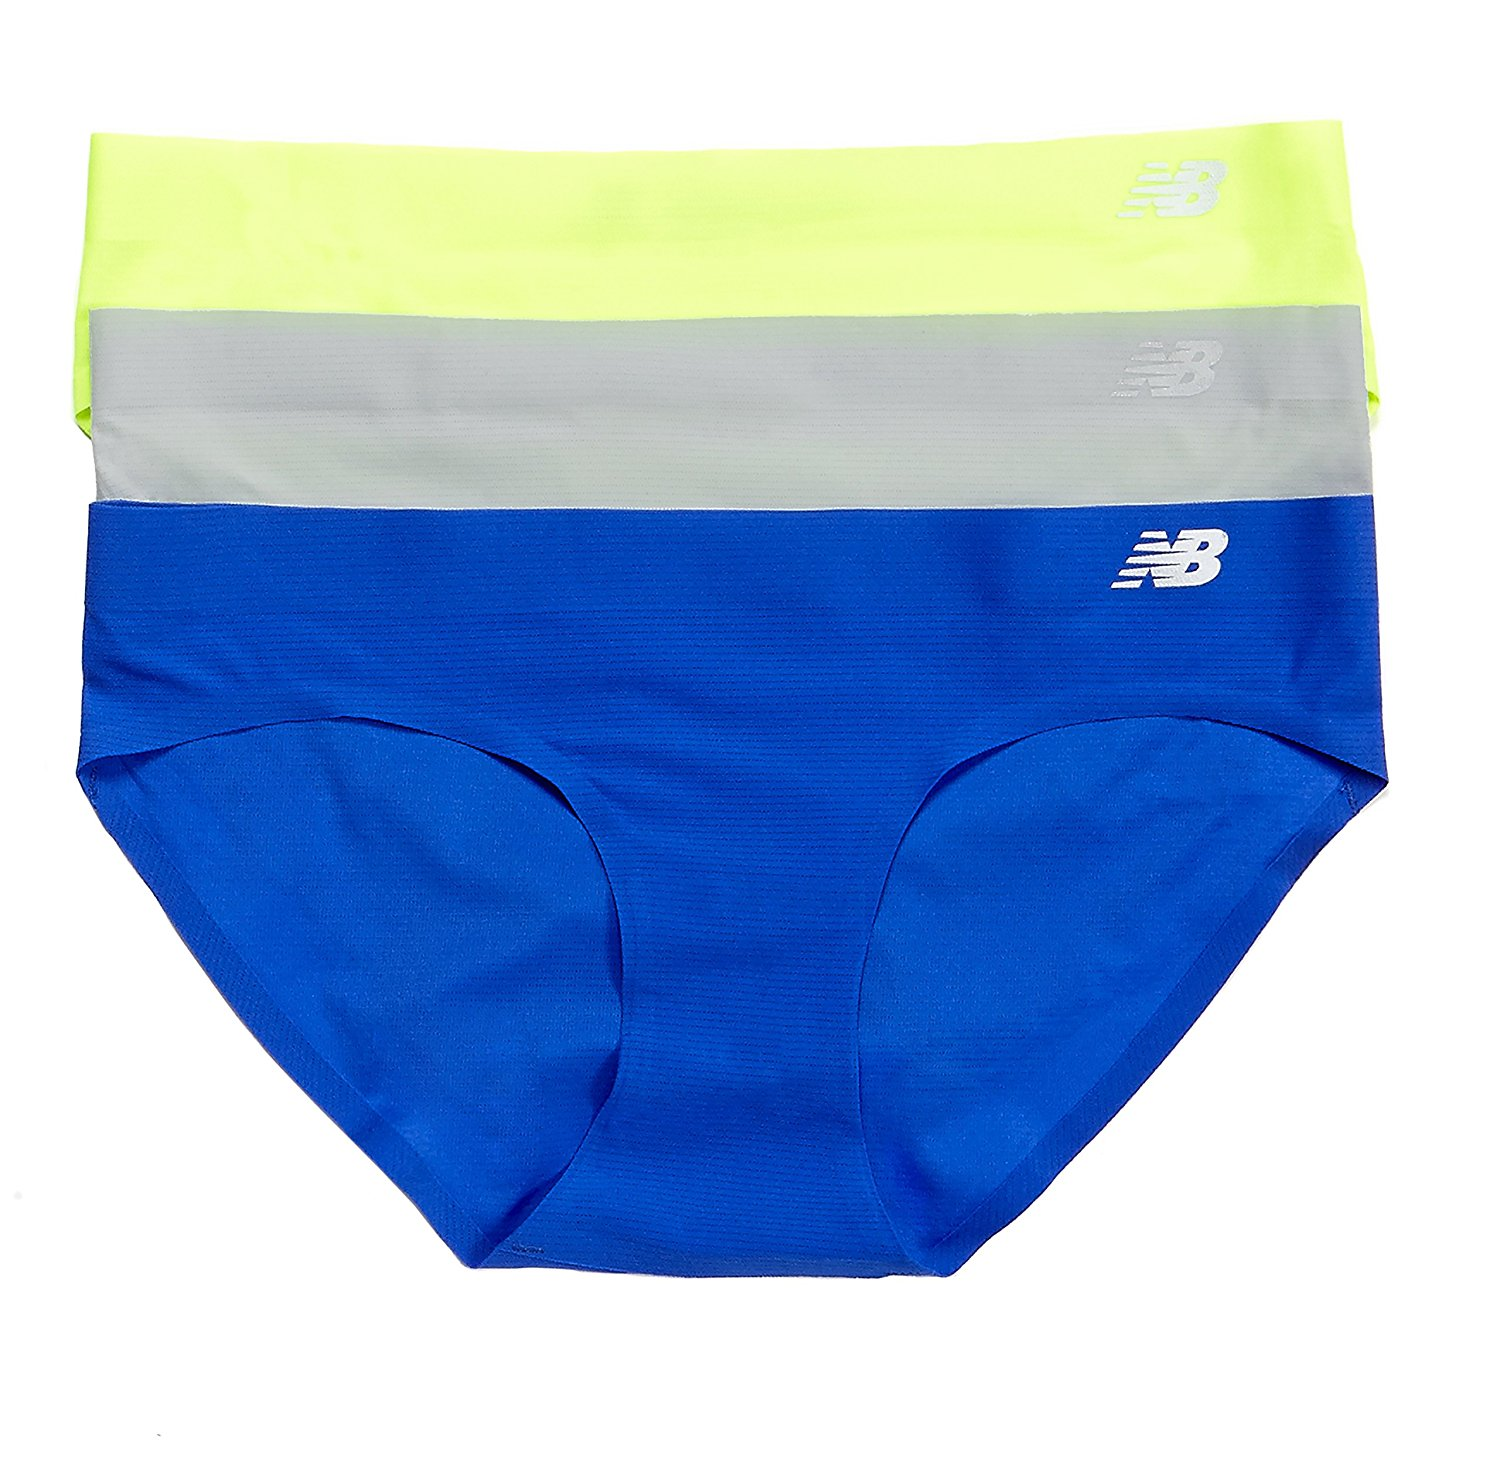 These ultra lightweight and breathable mesh underwear wick moisture rapidly and dry quickly - perfect for an on-the-go workout! - $